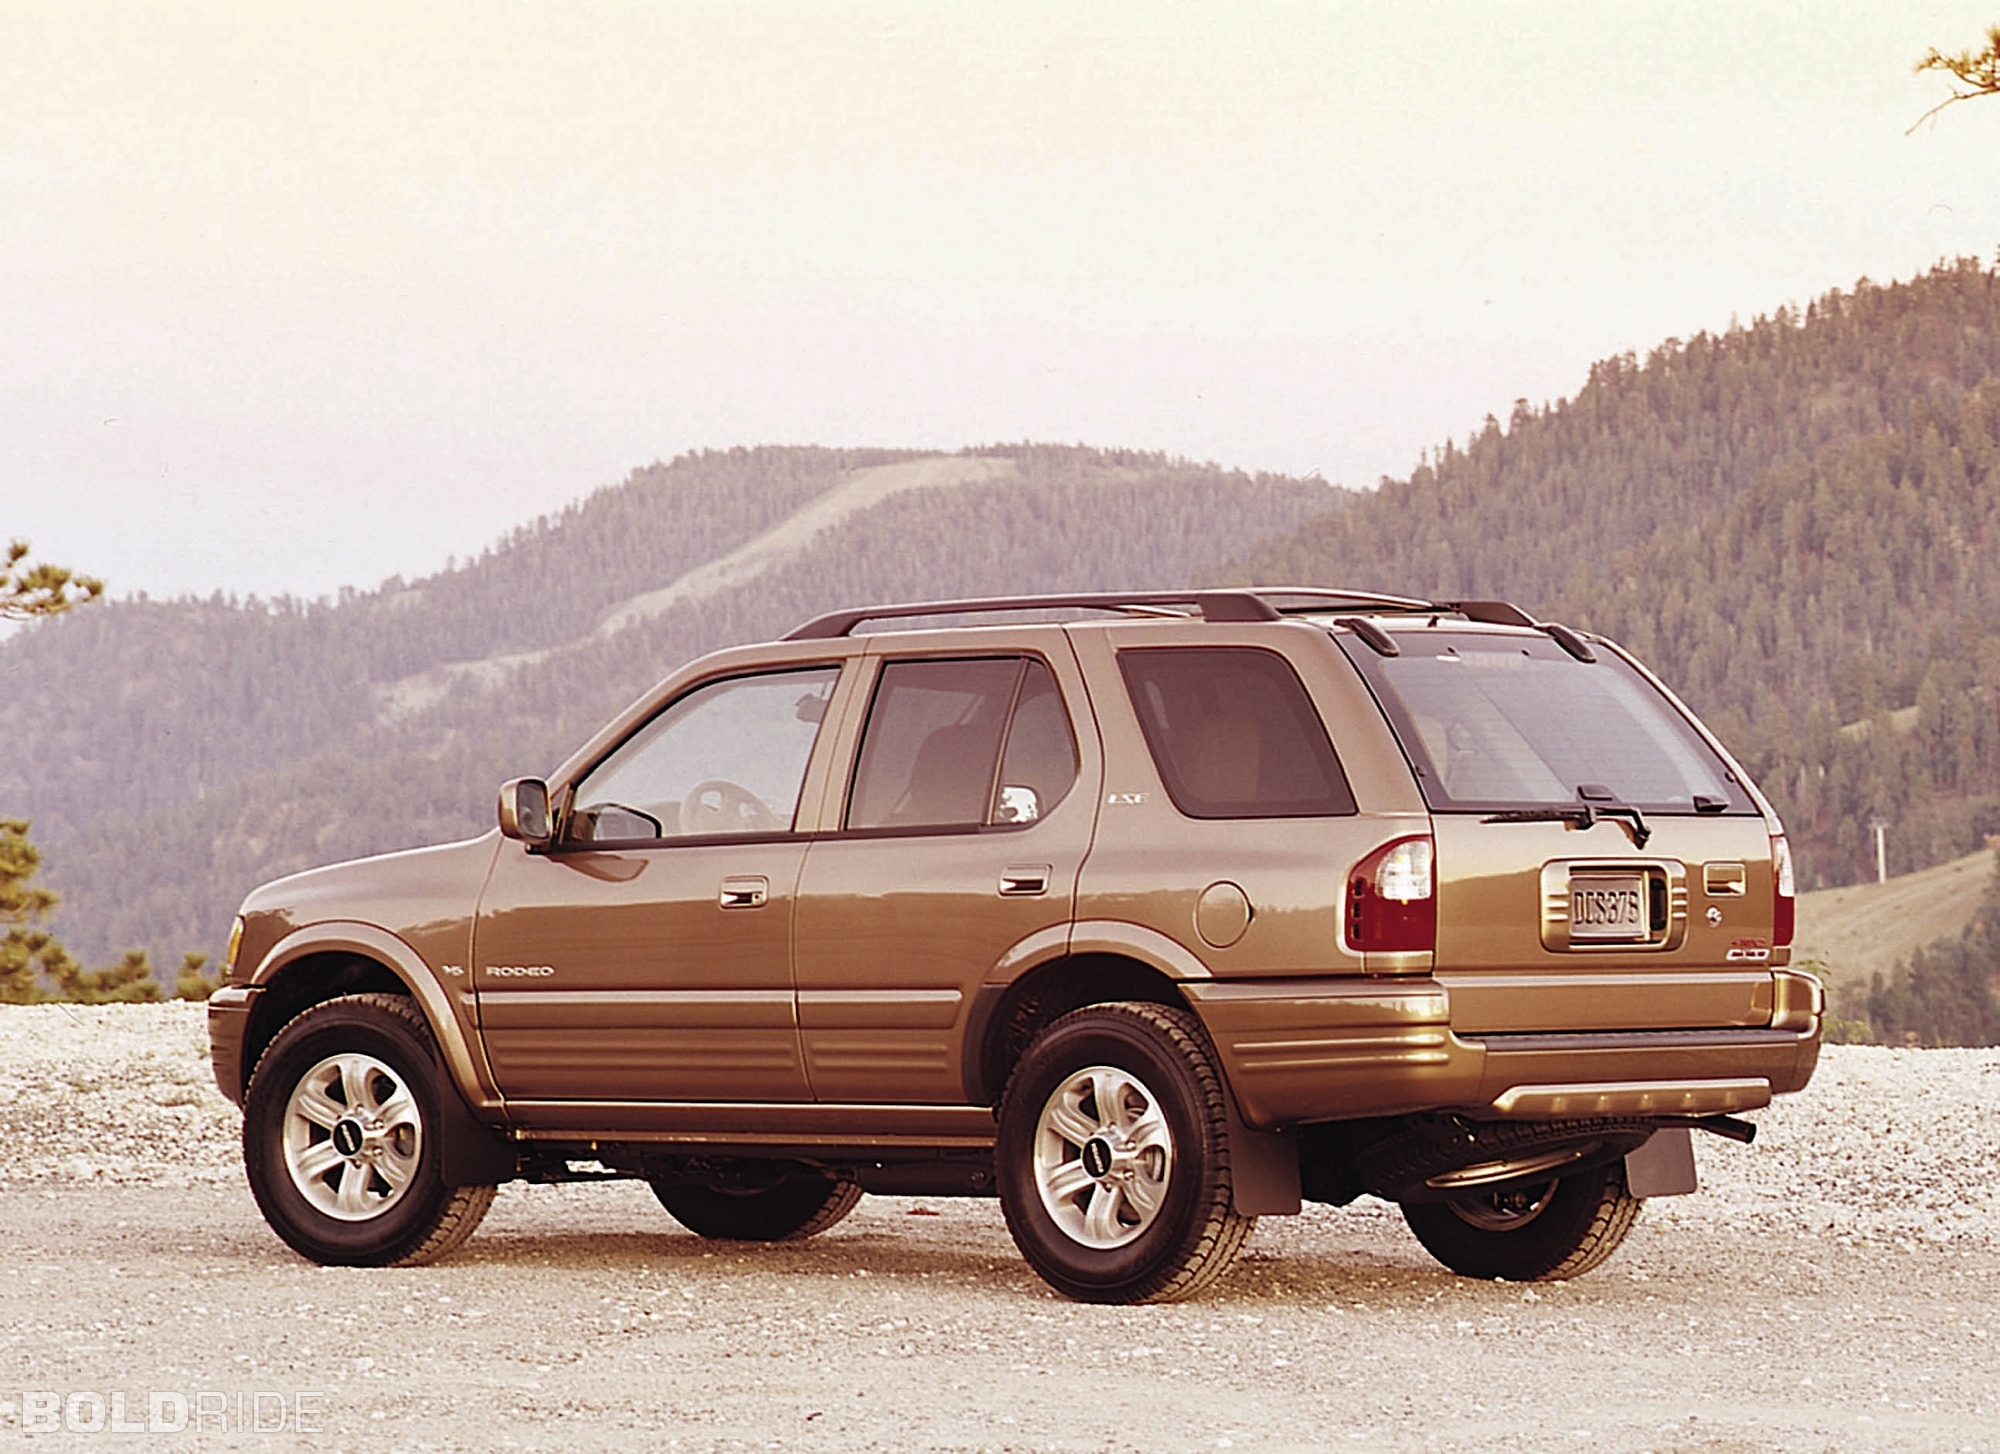 Isuzu Rodeo #2